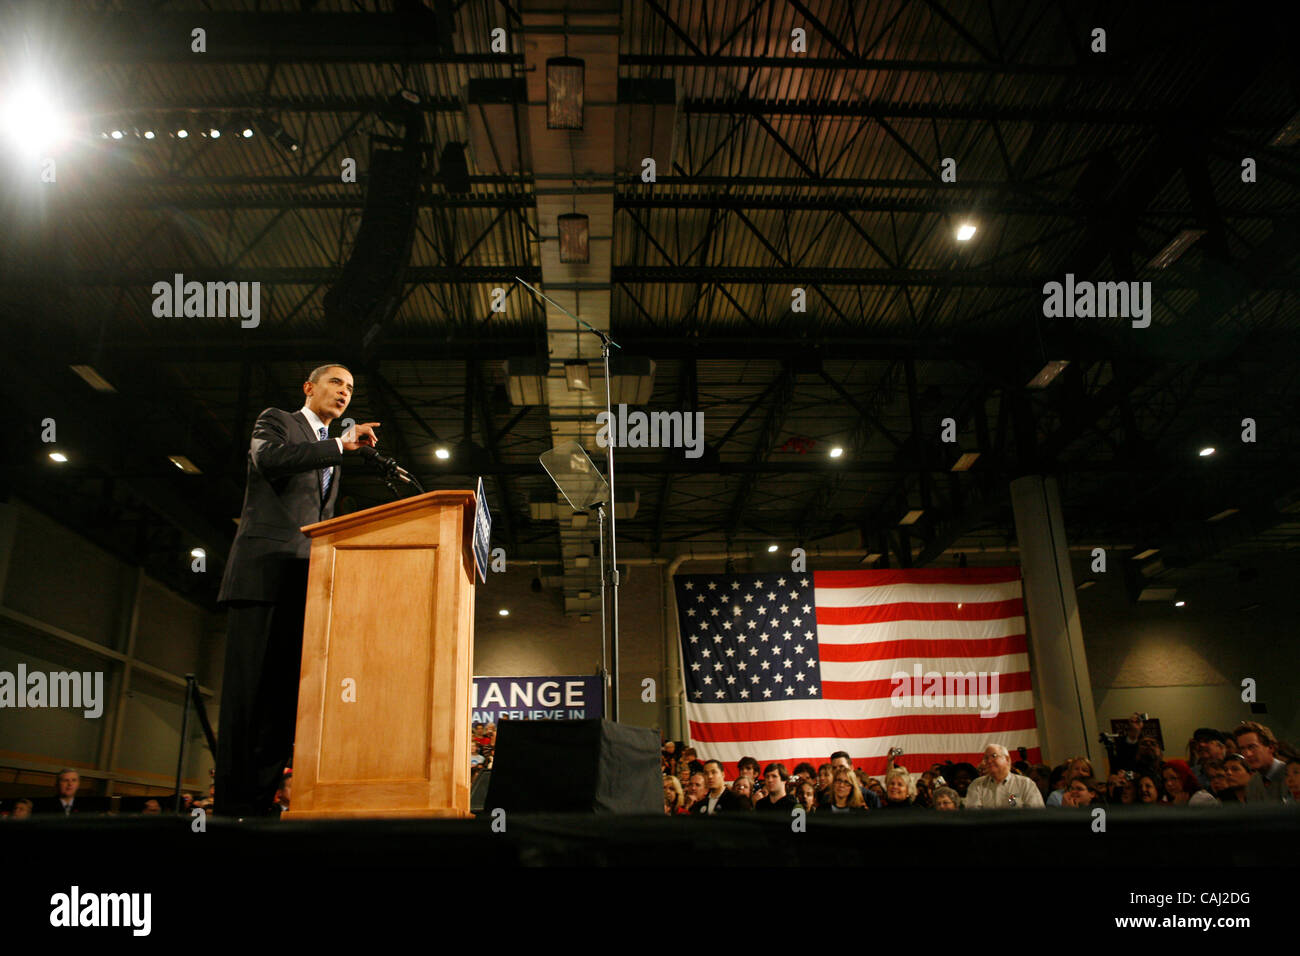 Jan 03, 2008 - Des Moines, Iowa, USA - Senator BARACK OBAMA addresses a crowd of supporters after winning the Iowa - Stock Image